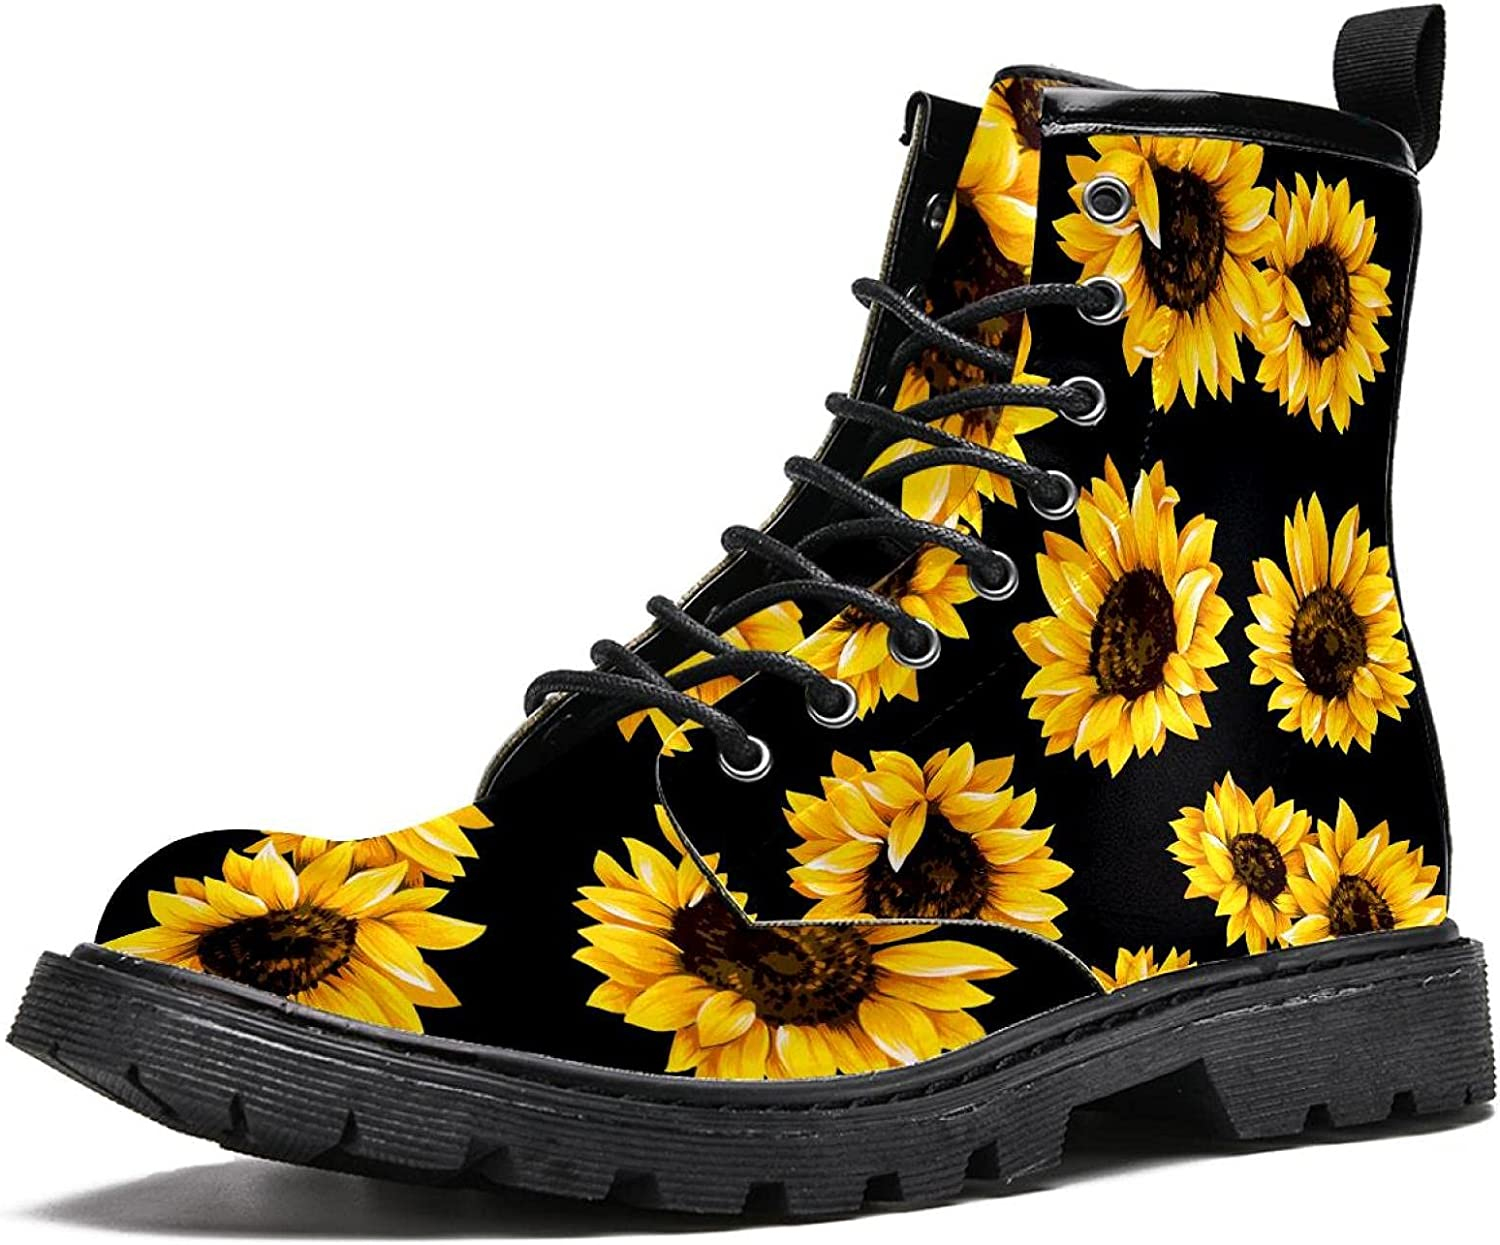 outlet 2021 model Sunflower Women's Stylish High Top Hiking L Boots Durable